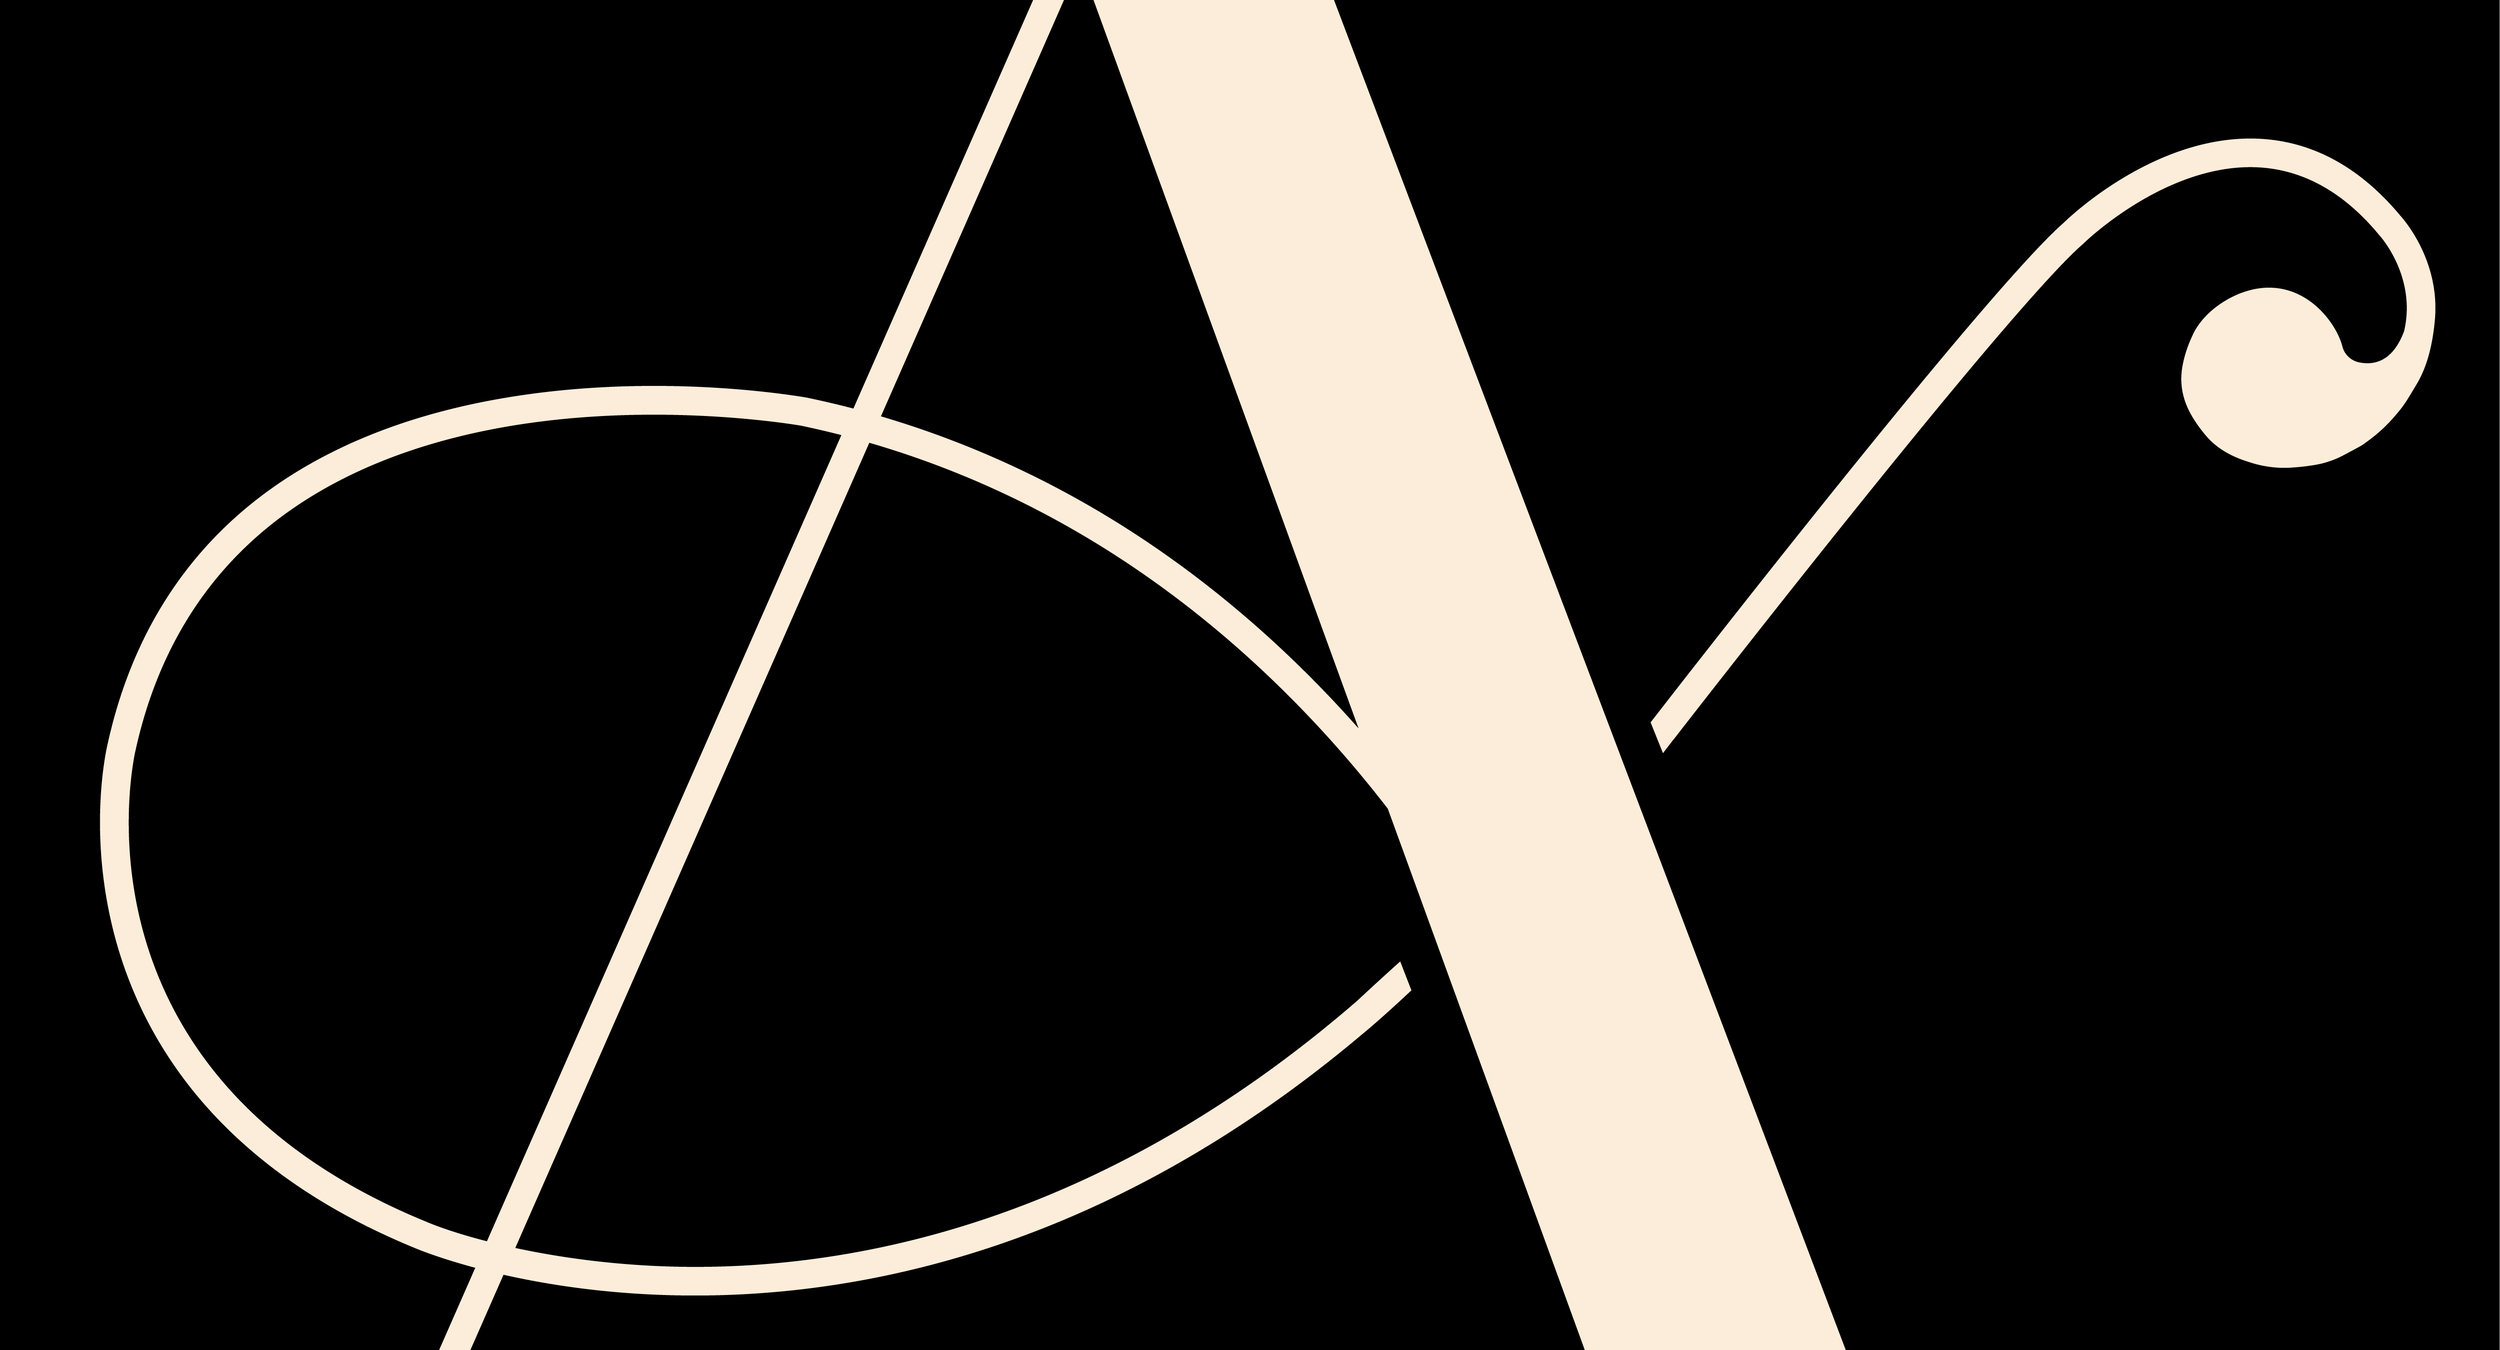 Anastasia_Salazar_logo_Cream_On_Black.jpg